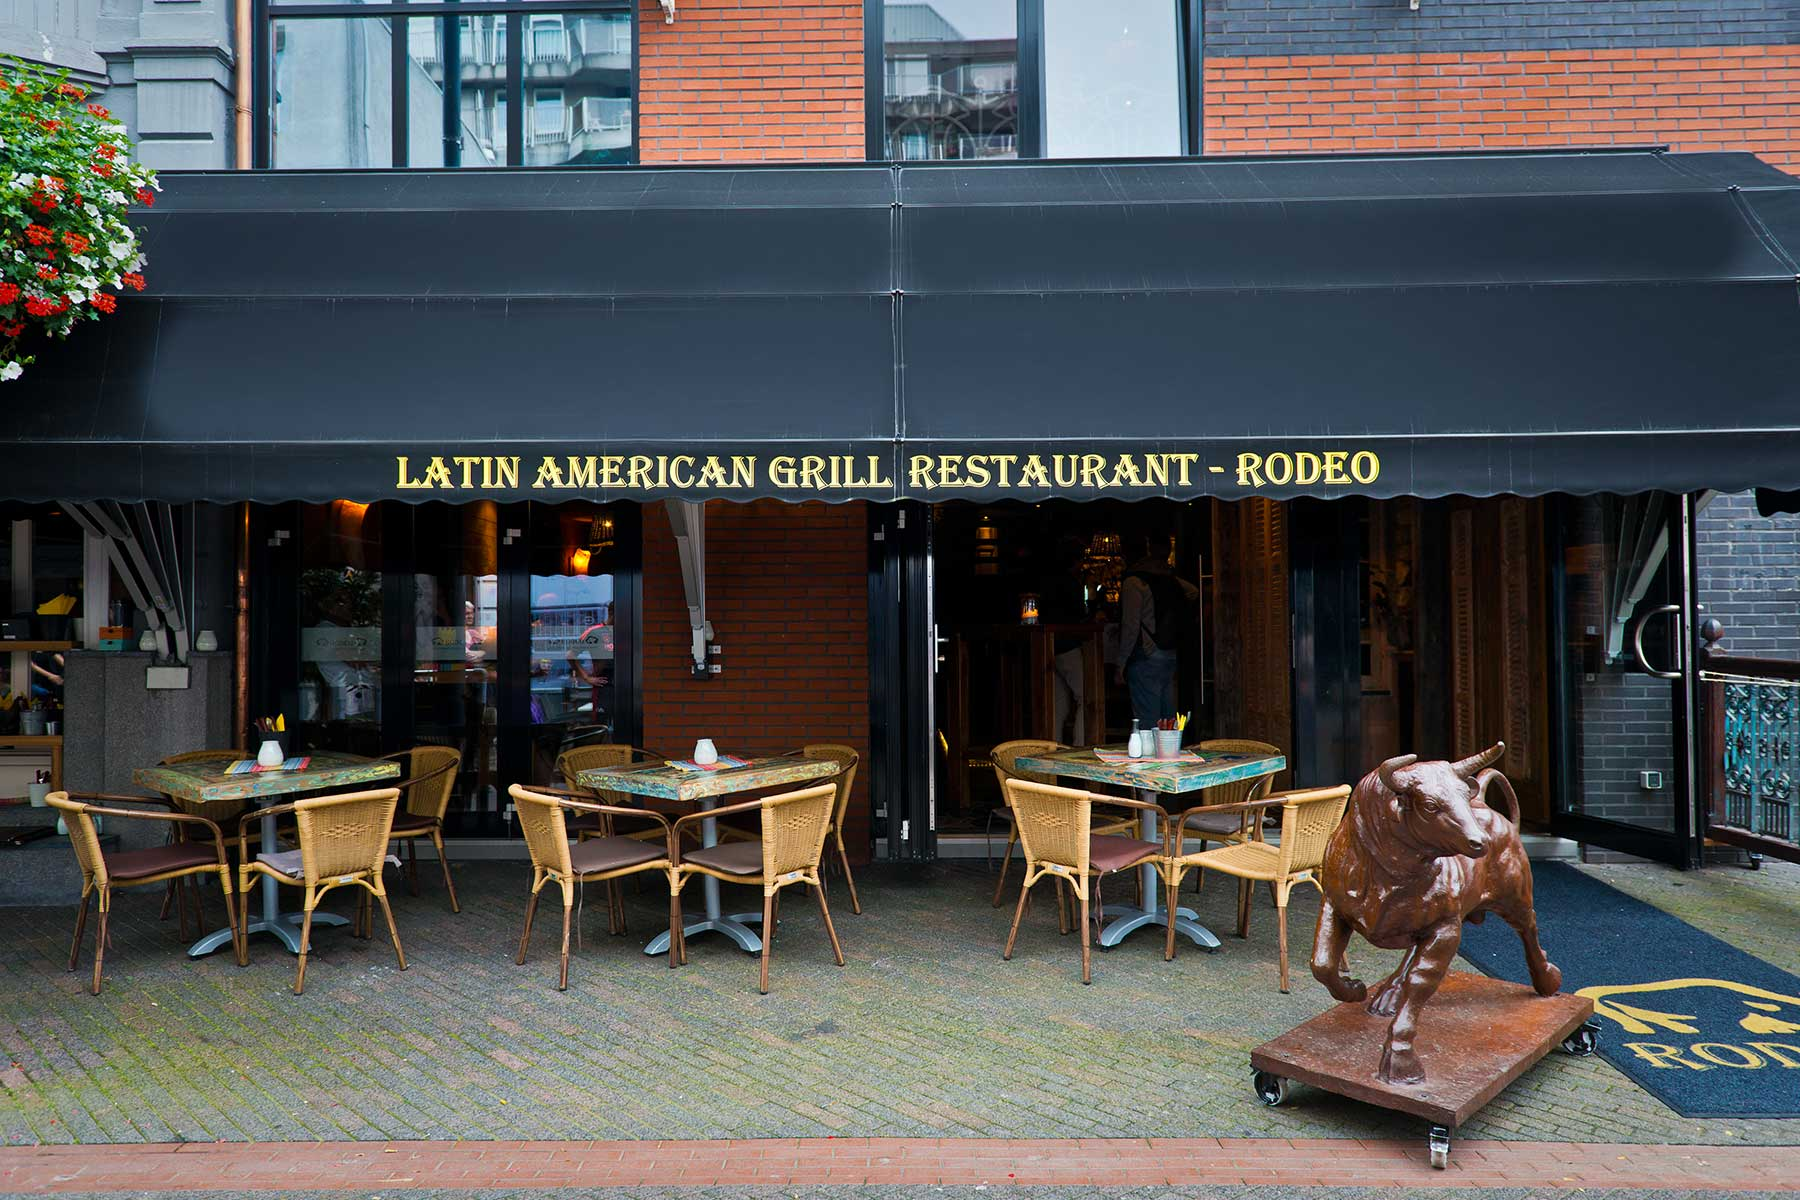 Rodeo Eindhoven Latin Grill Restaurant Argentine Food At Its Best